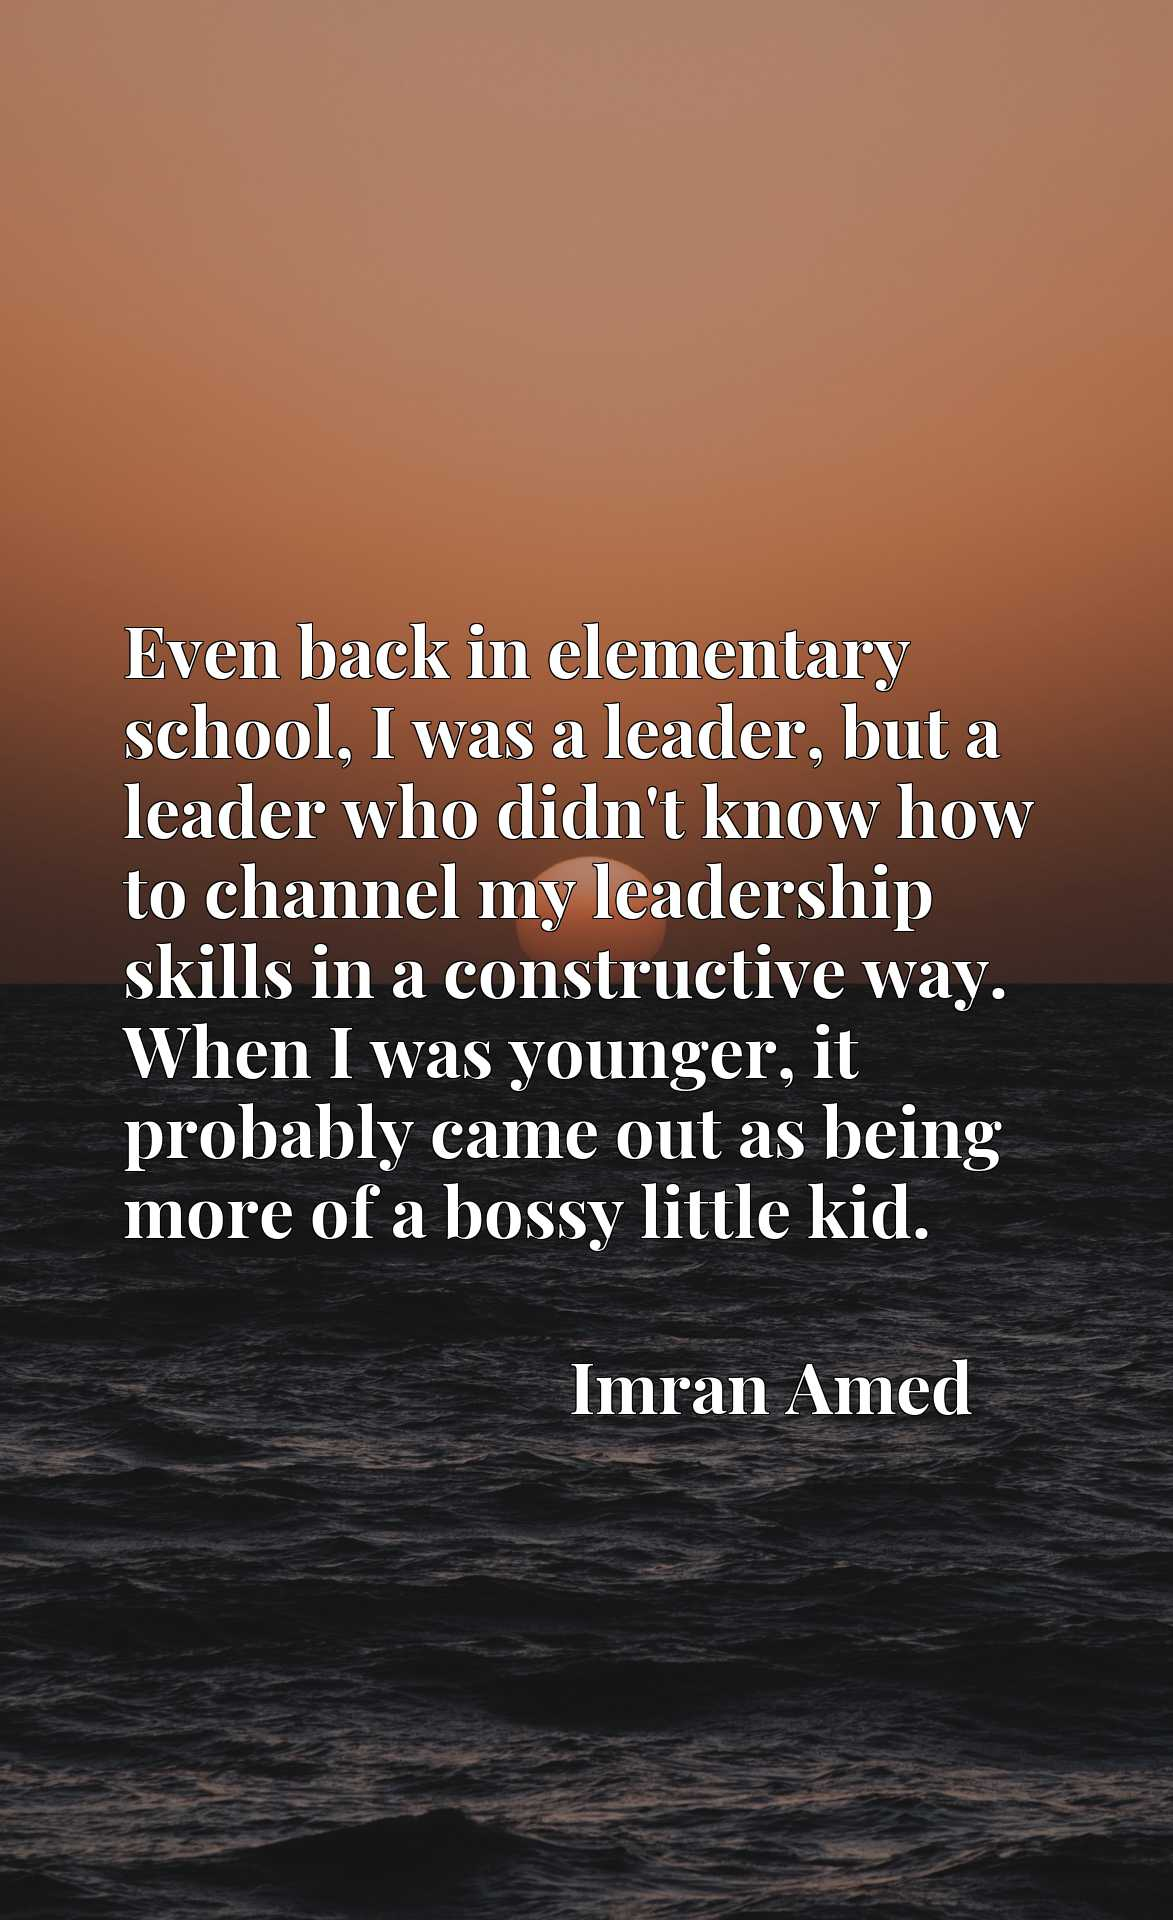 Quote Picture :Even back in elementary school, I was a leader, but a leader who didn't know how to channel my leadership skills in a constructive way. When I was younger, it probably came out as being more of a bossy little kid.